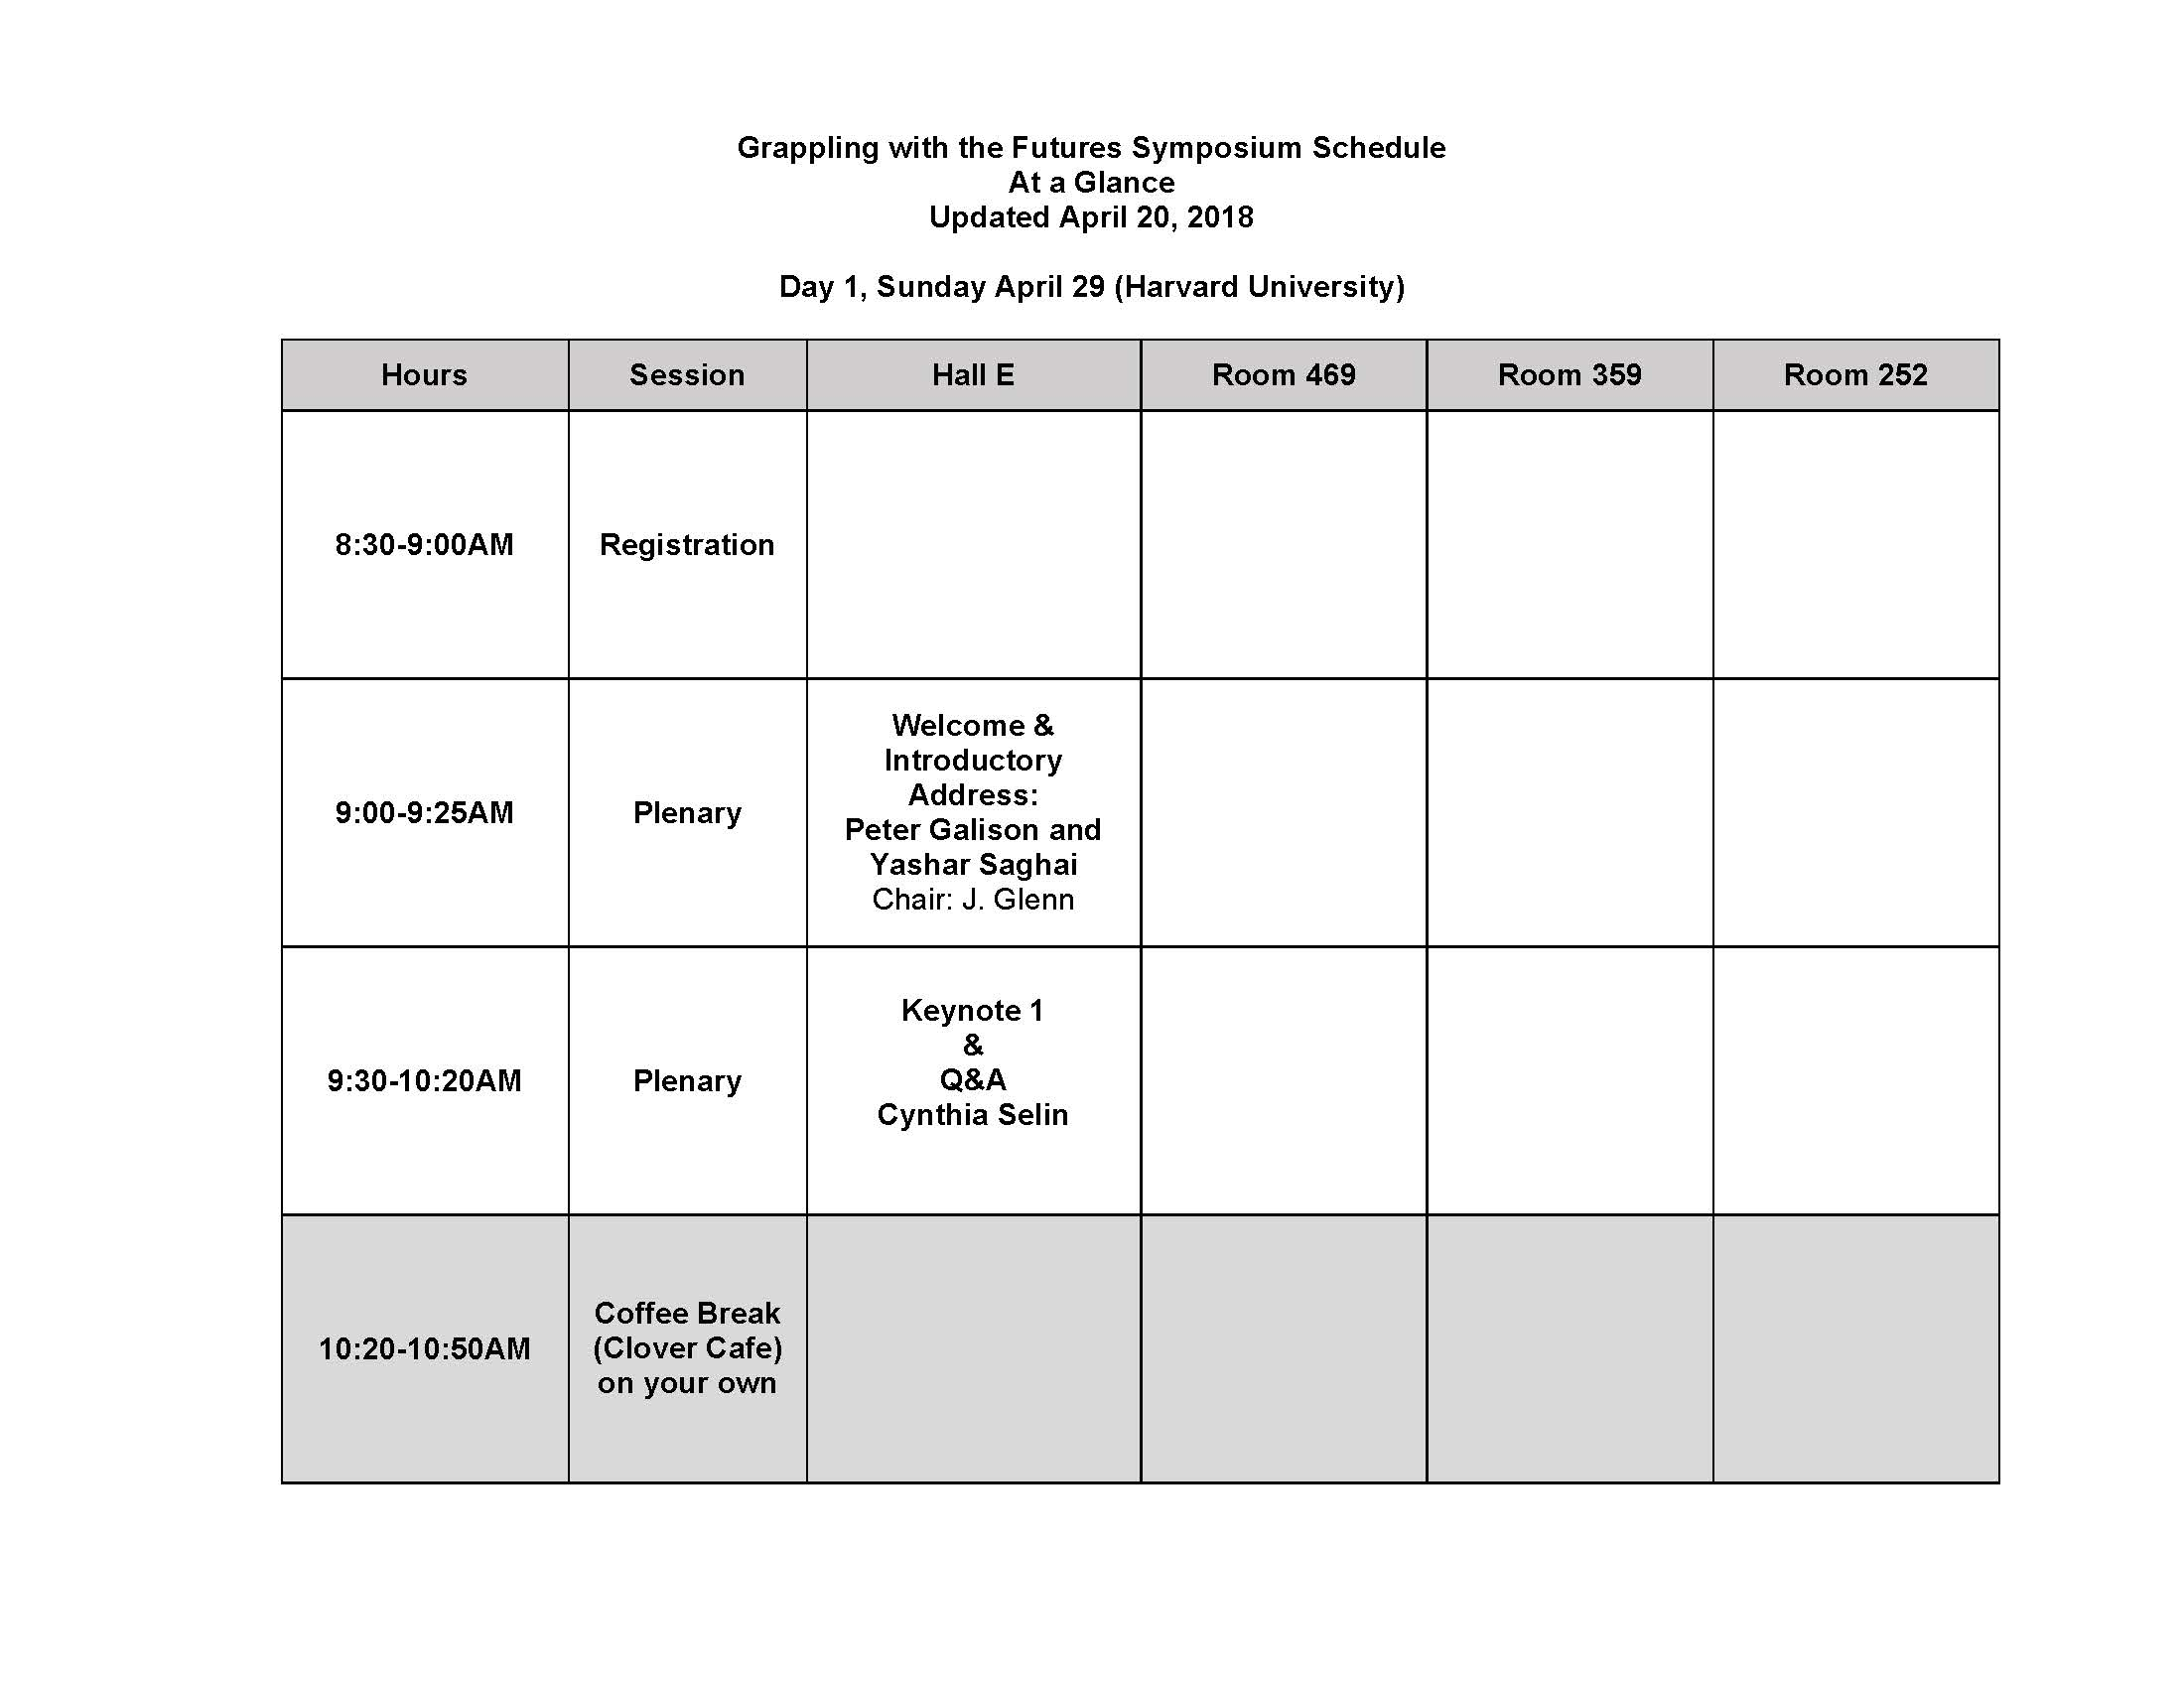 GwF Symposium Schedule At a Glance_Page_1.jpg